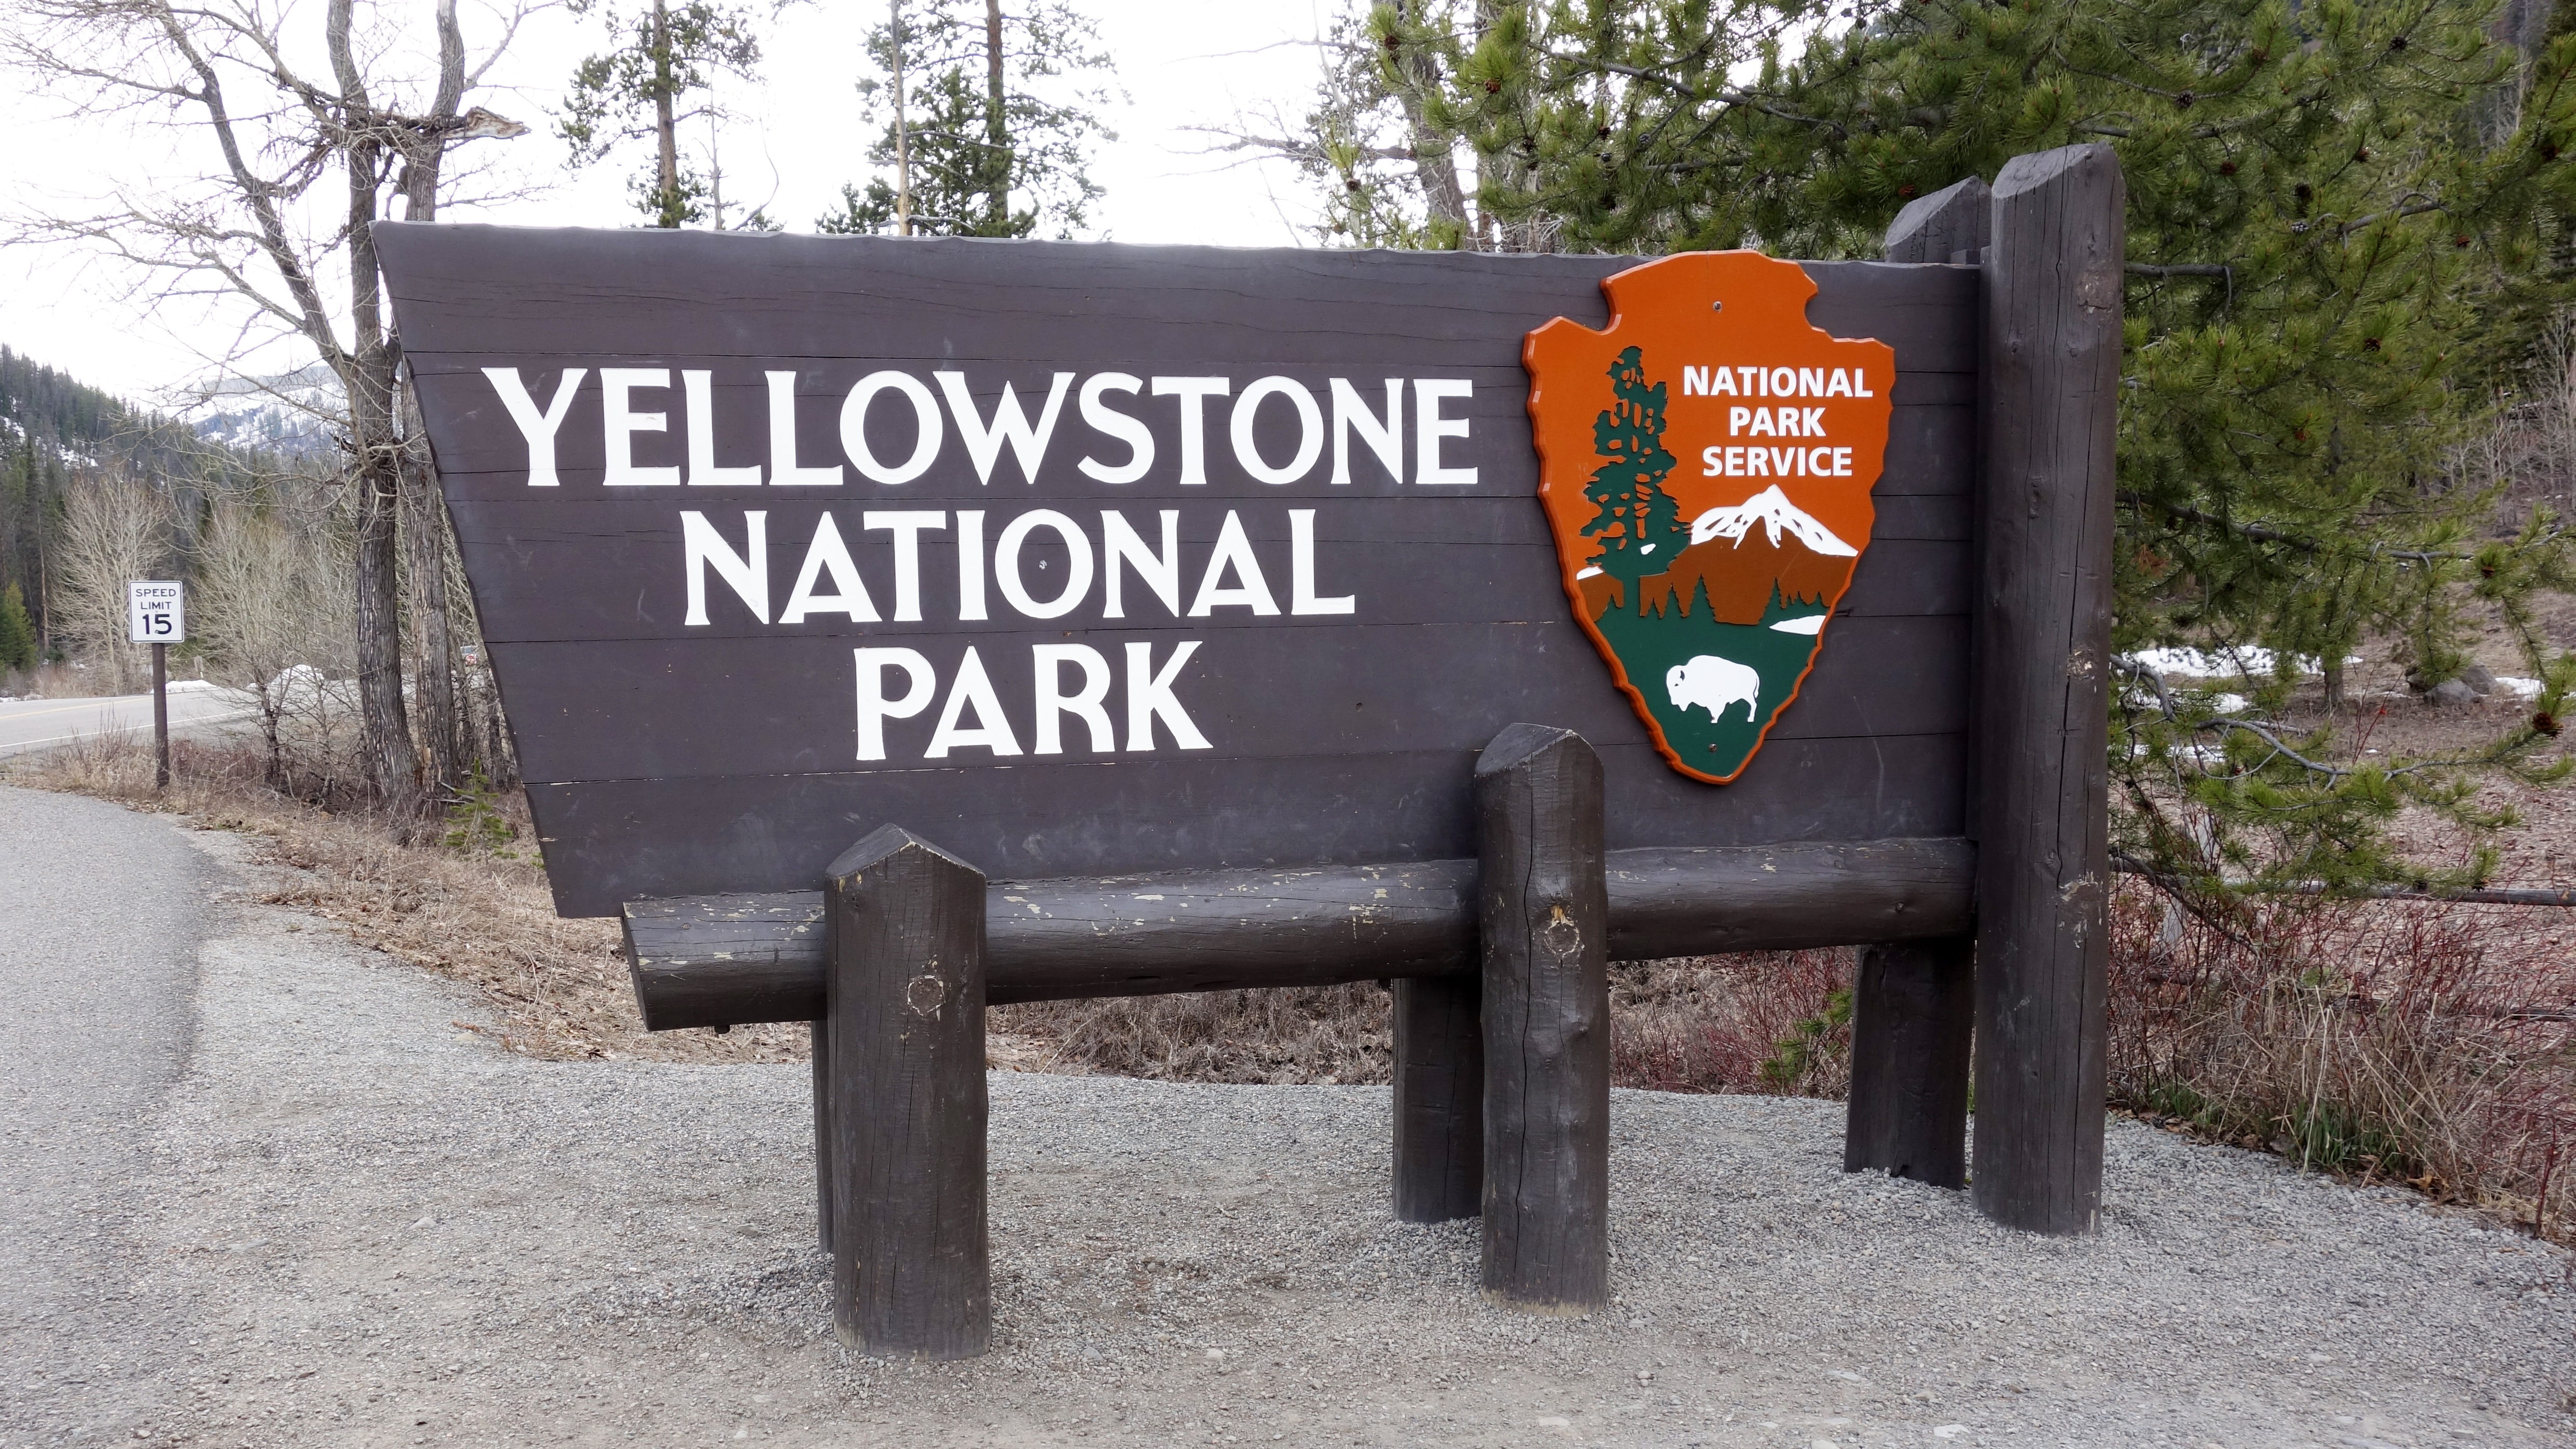 Beep to Supply Autonomous Shuttles in Yellowstone National Park